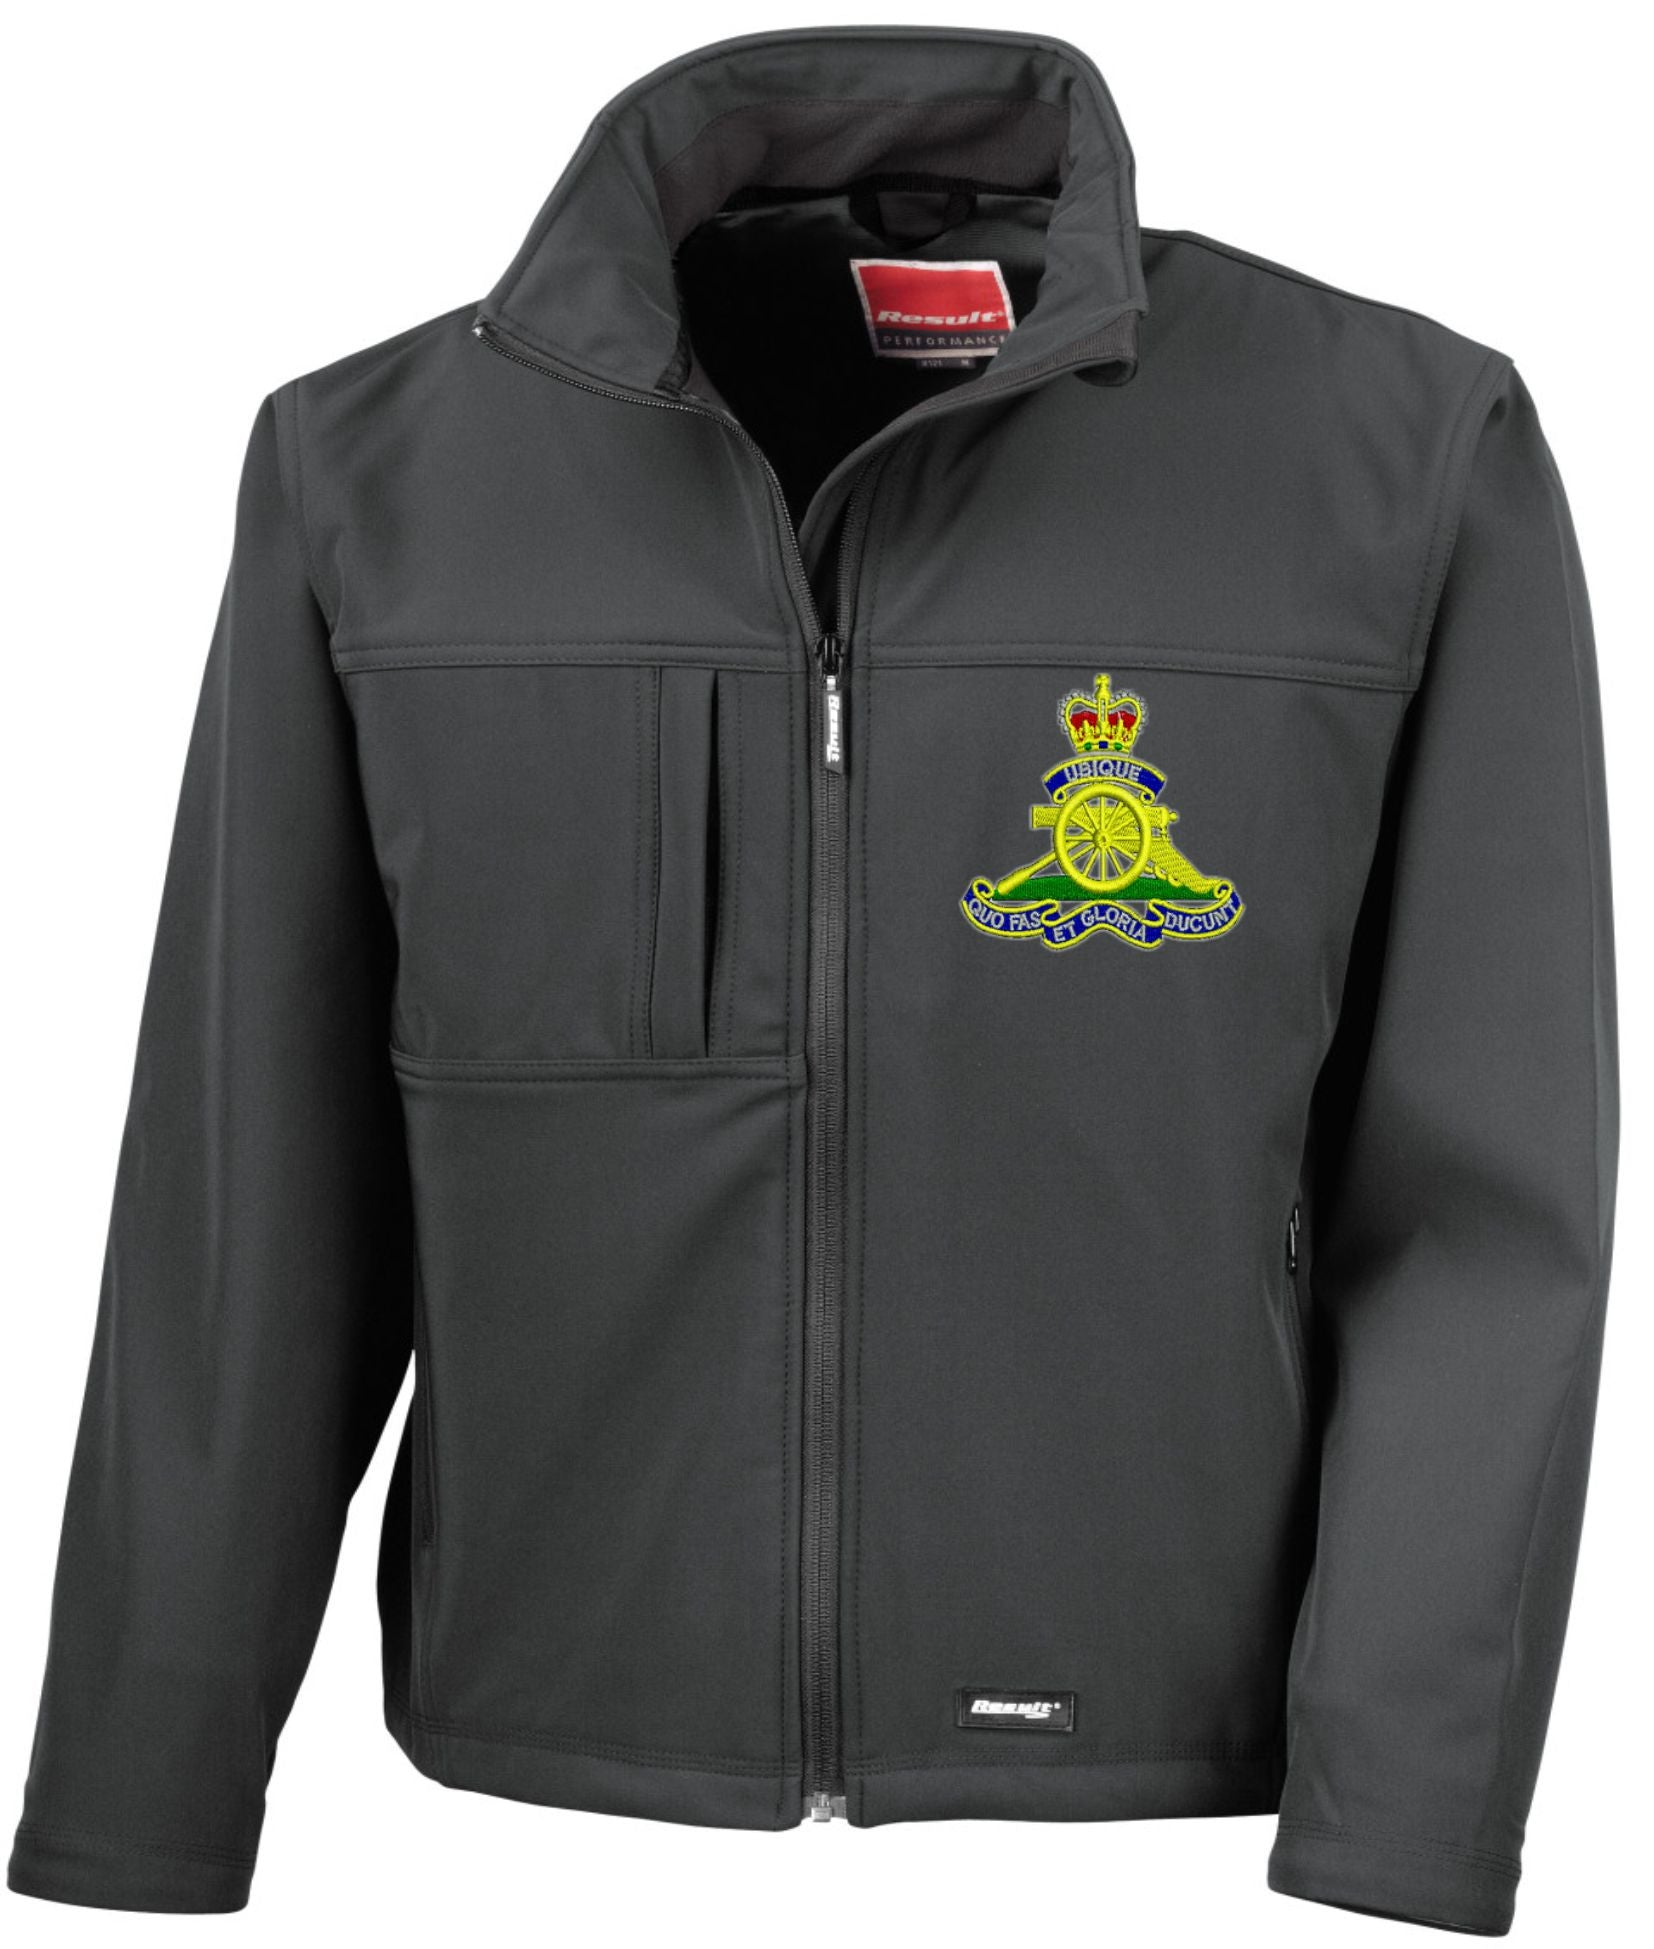 Royal Artillery SoftShell